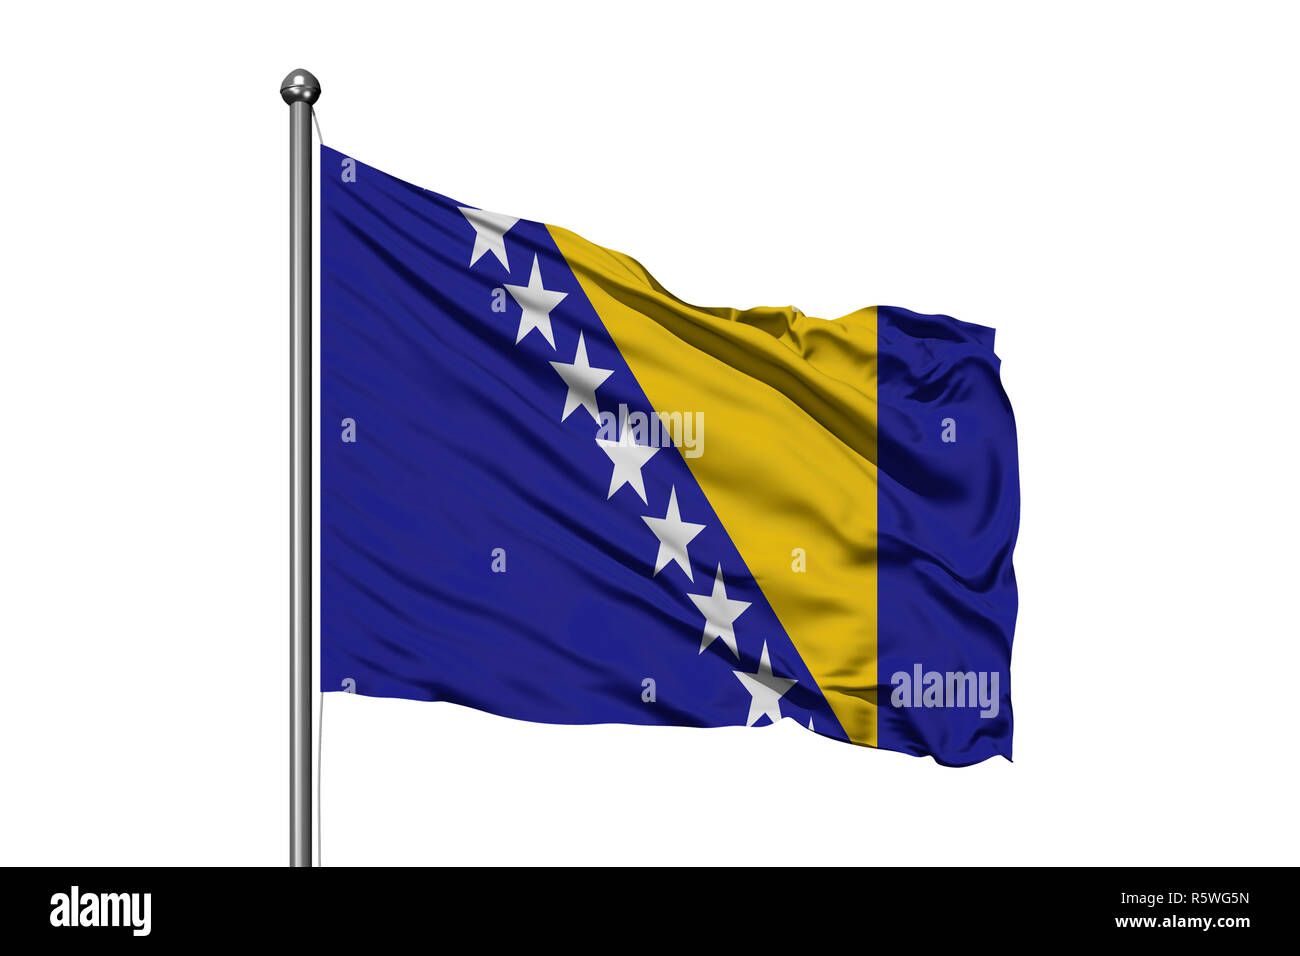 Flag of Bosnia-Herzegovina waving in the wind, isolated white background. Bosnian flag. - Stock Image